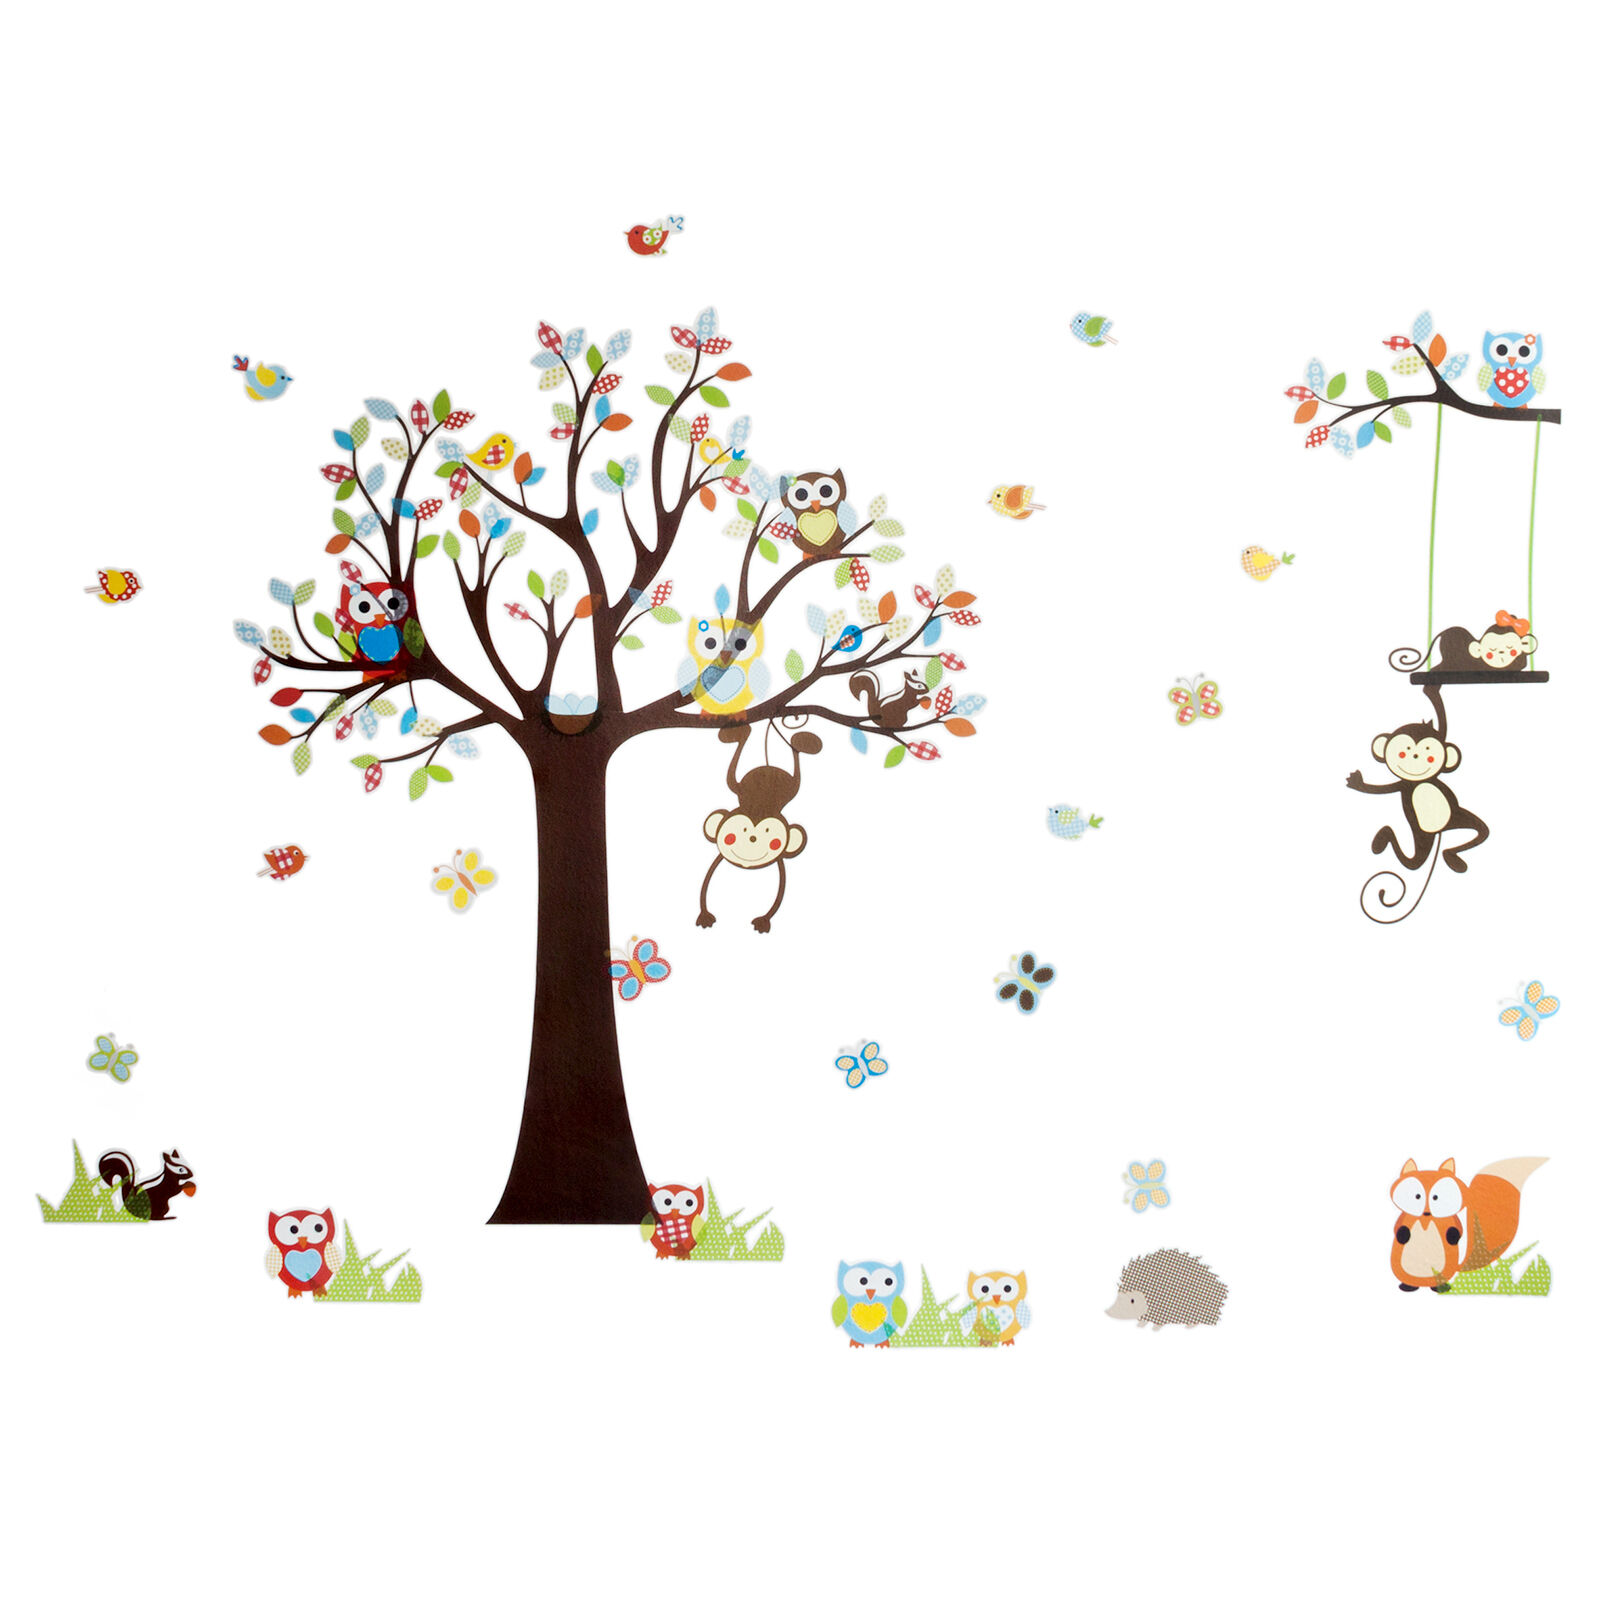 wandtattoo wandsticker kinderzimmer xxl deko tiere kinder wald affe baum baby eur 9 90. Black Bedroom Furniture Sets. Home Design Ideas